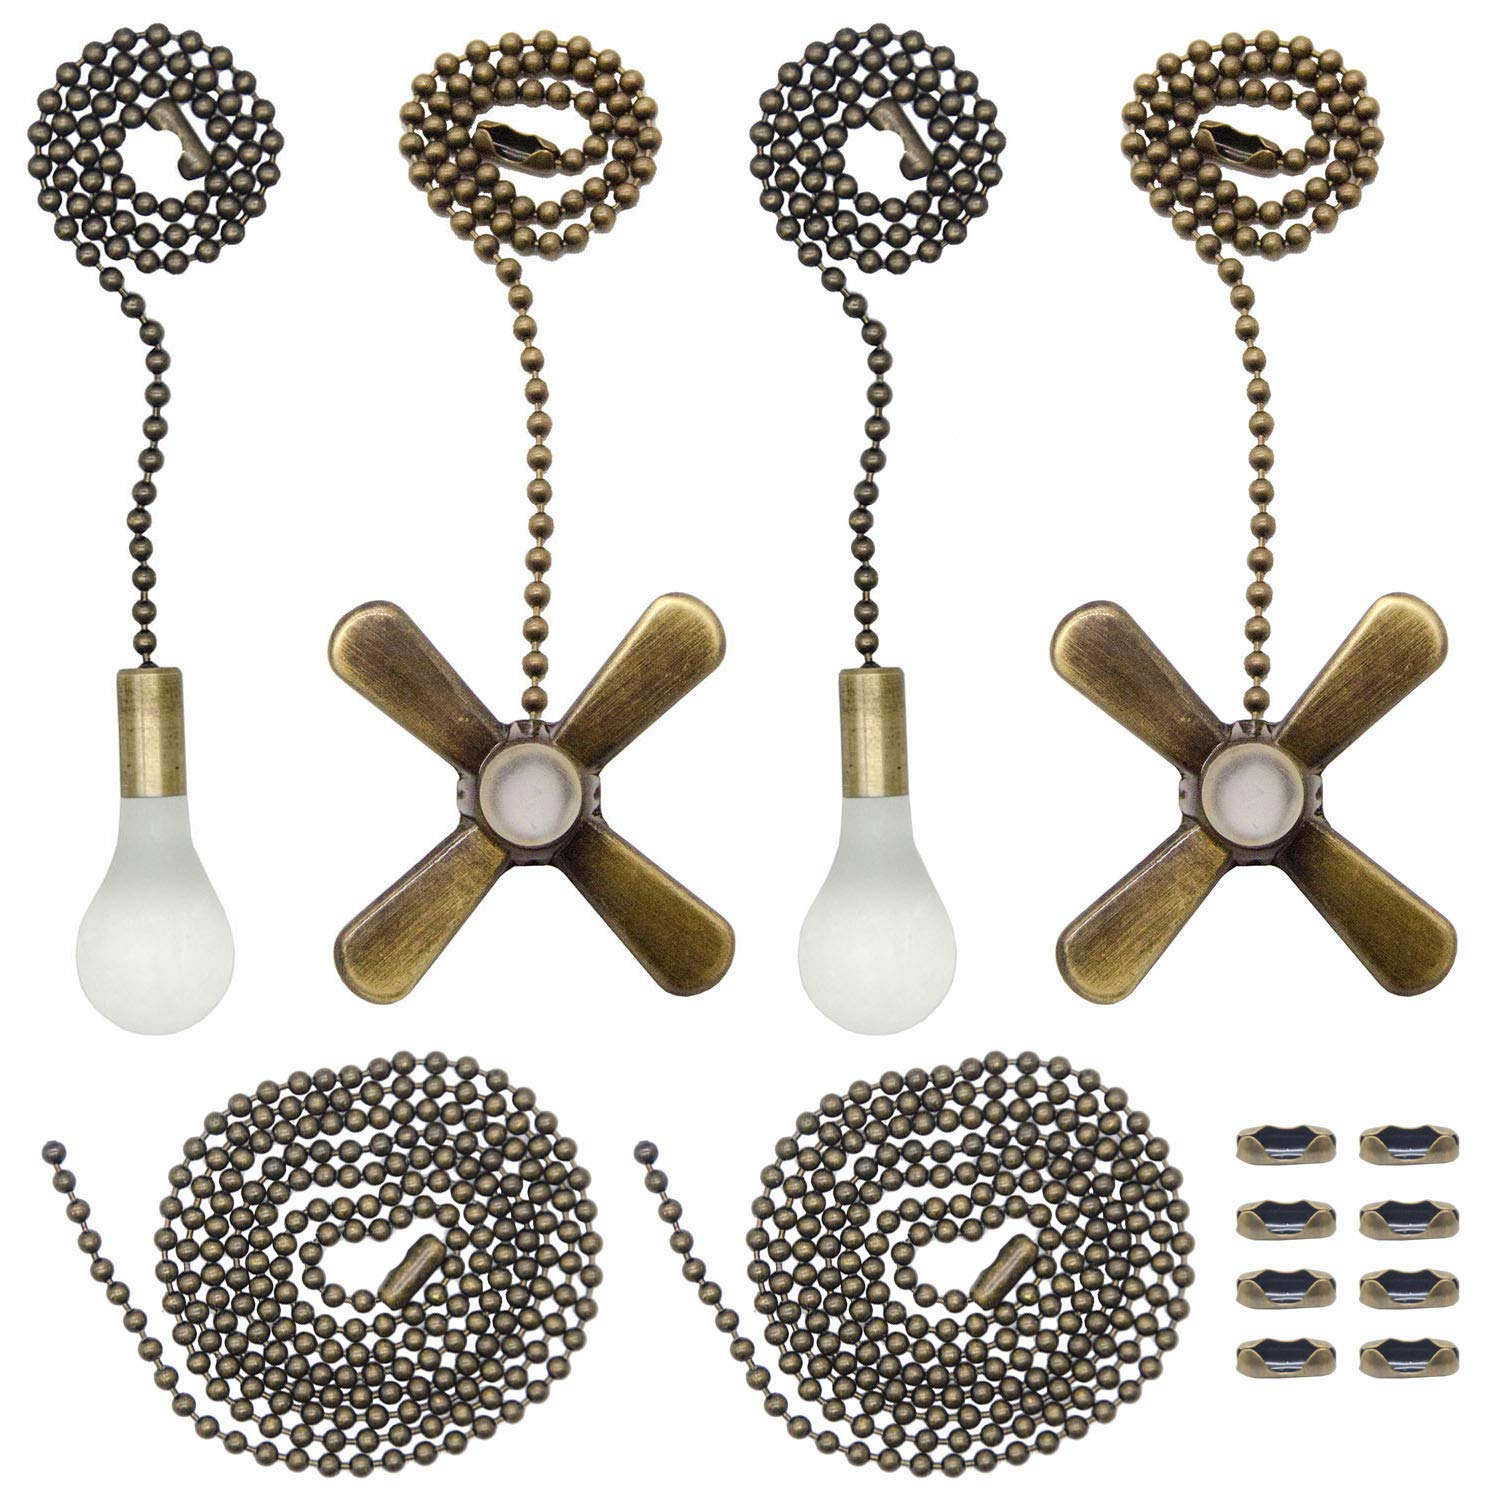 Iceyyyy Bronze Ceiling Fan Pull Chain Set Includes 4 Pieces 12 Inchs Light Bulb & Fan Shaped Pull Chains, 35.4 inches Bead Pull Chain and 4 Pieces Extra Connectors